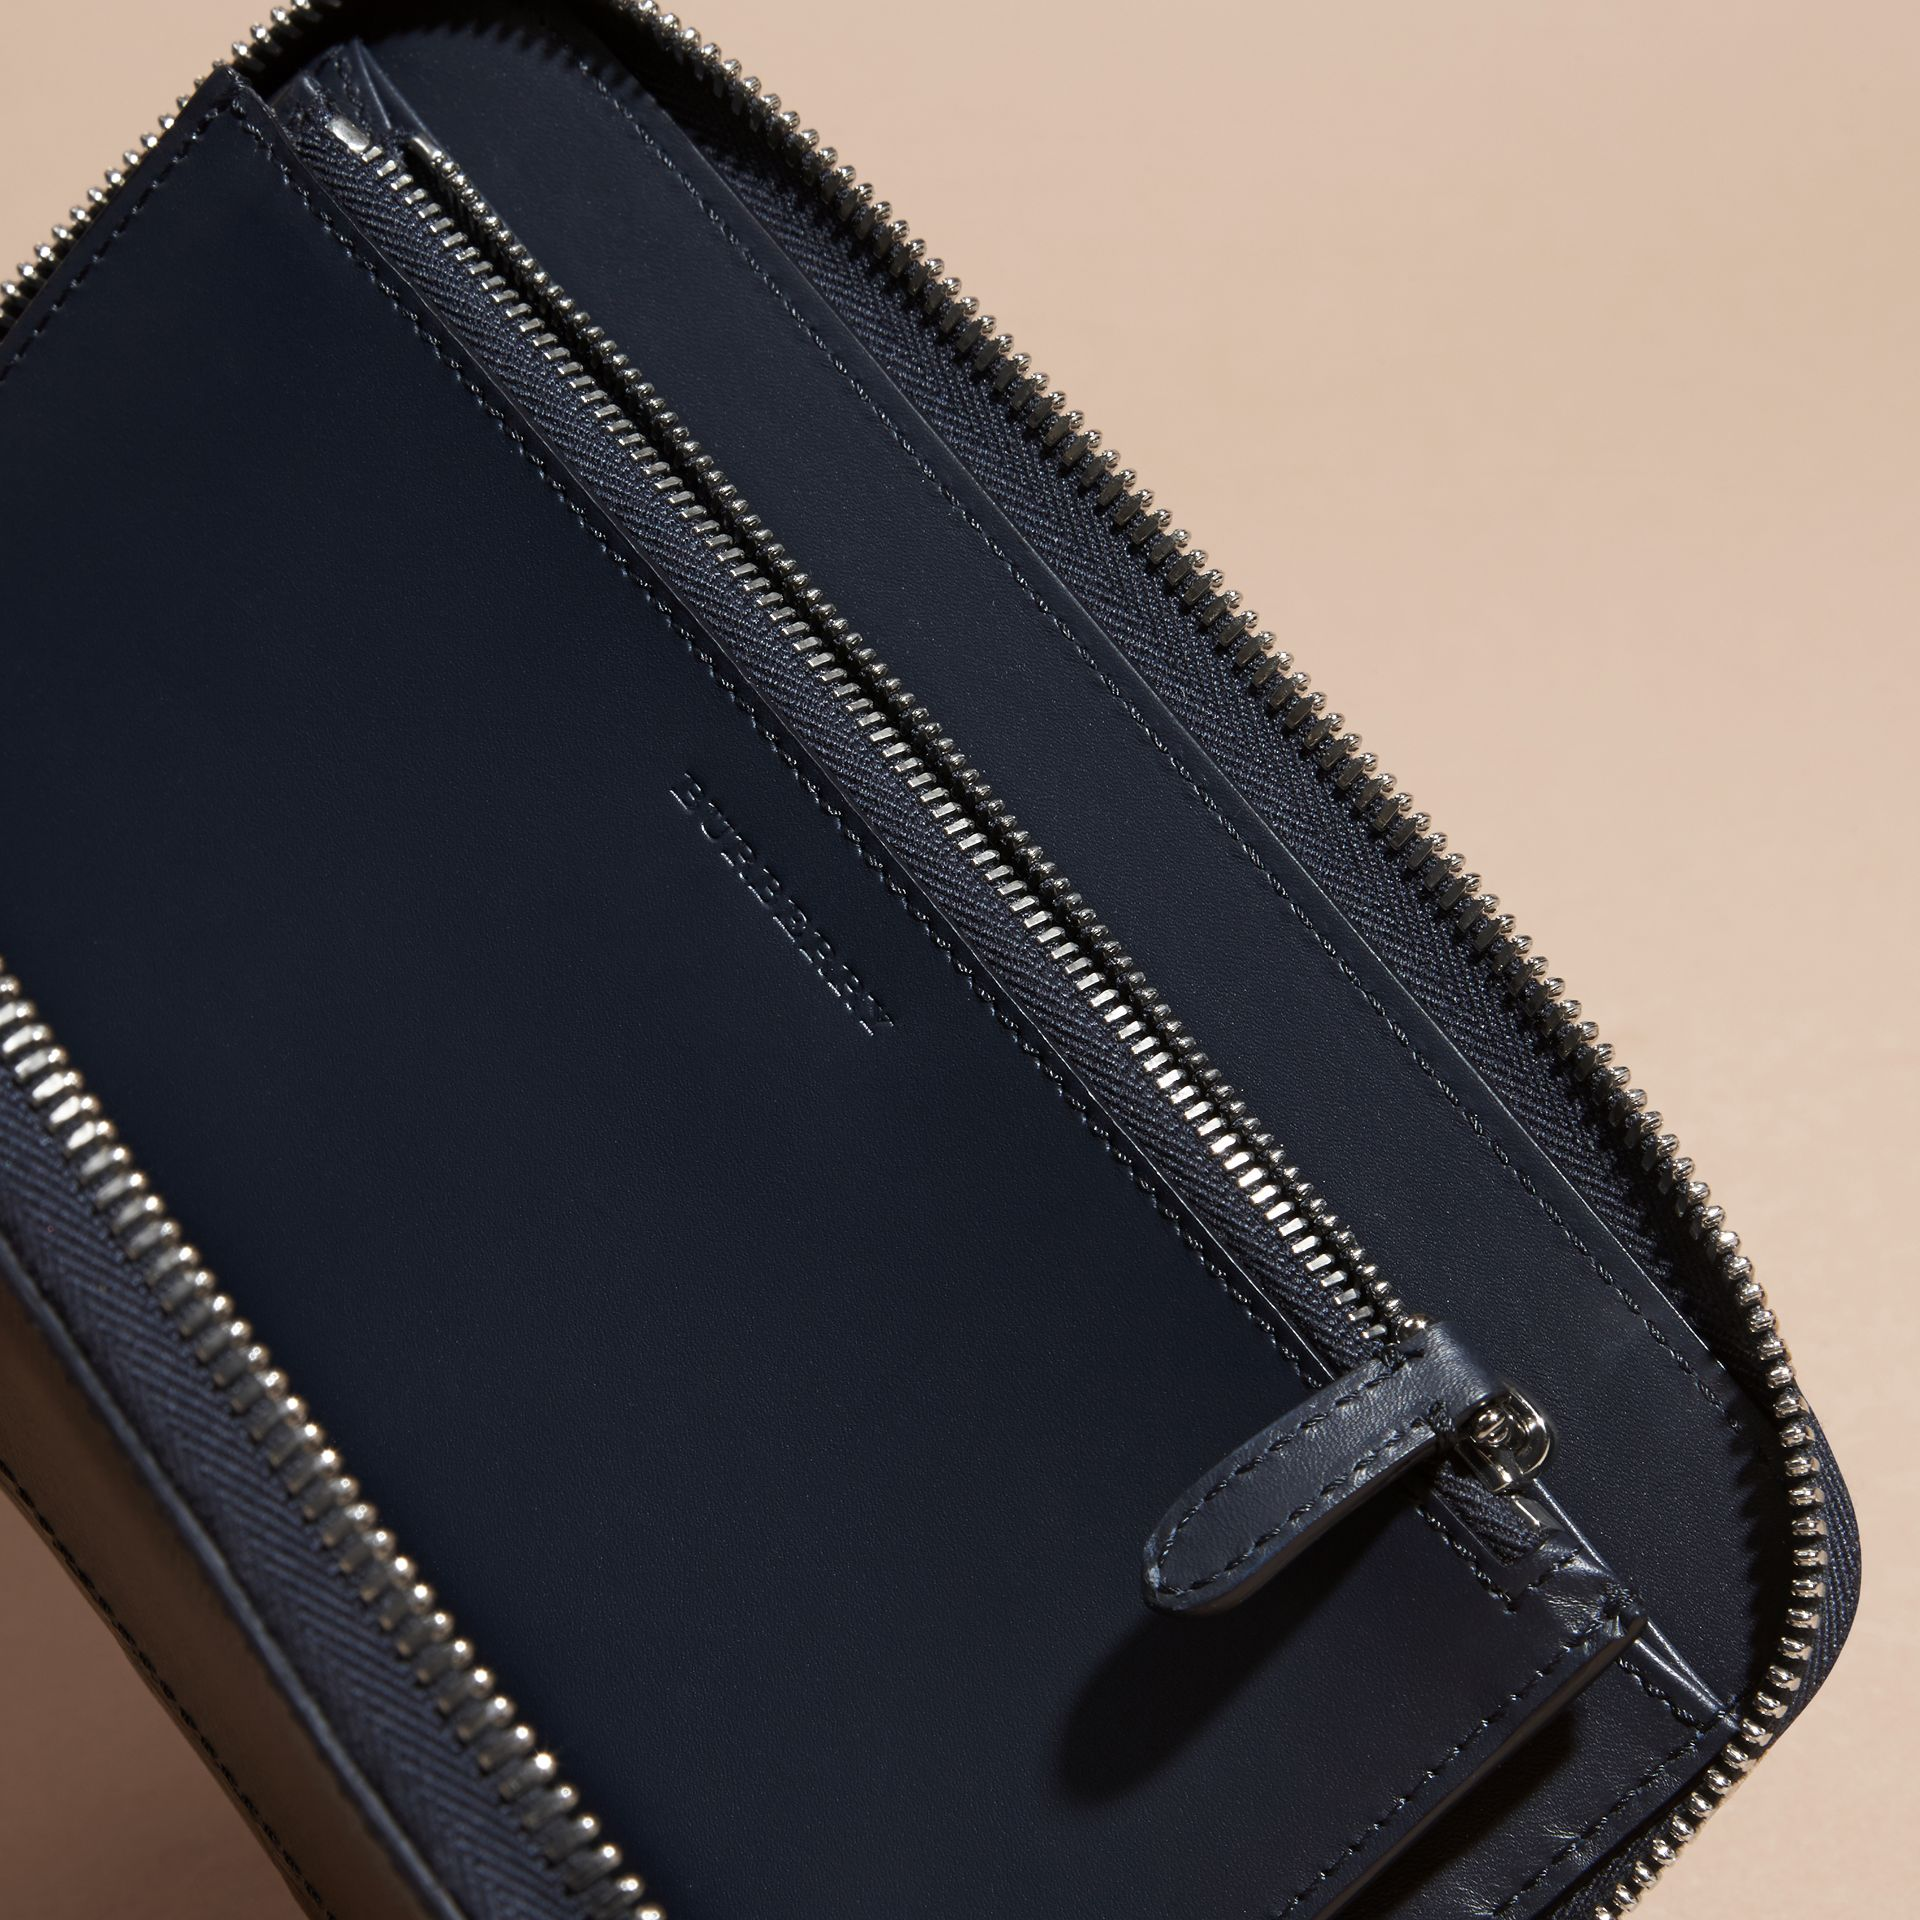 London Leather and Alligator Ziparound Wallet in Dark Navy - Men | Burberry - gallery image 5